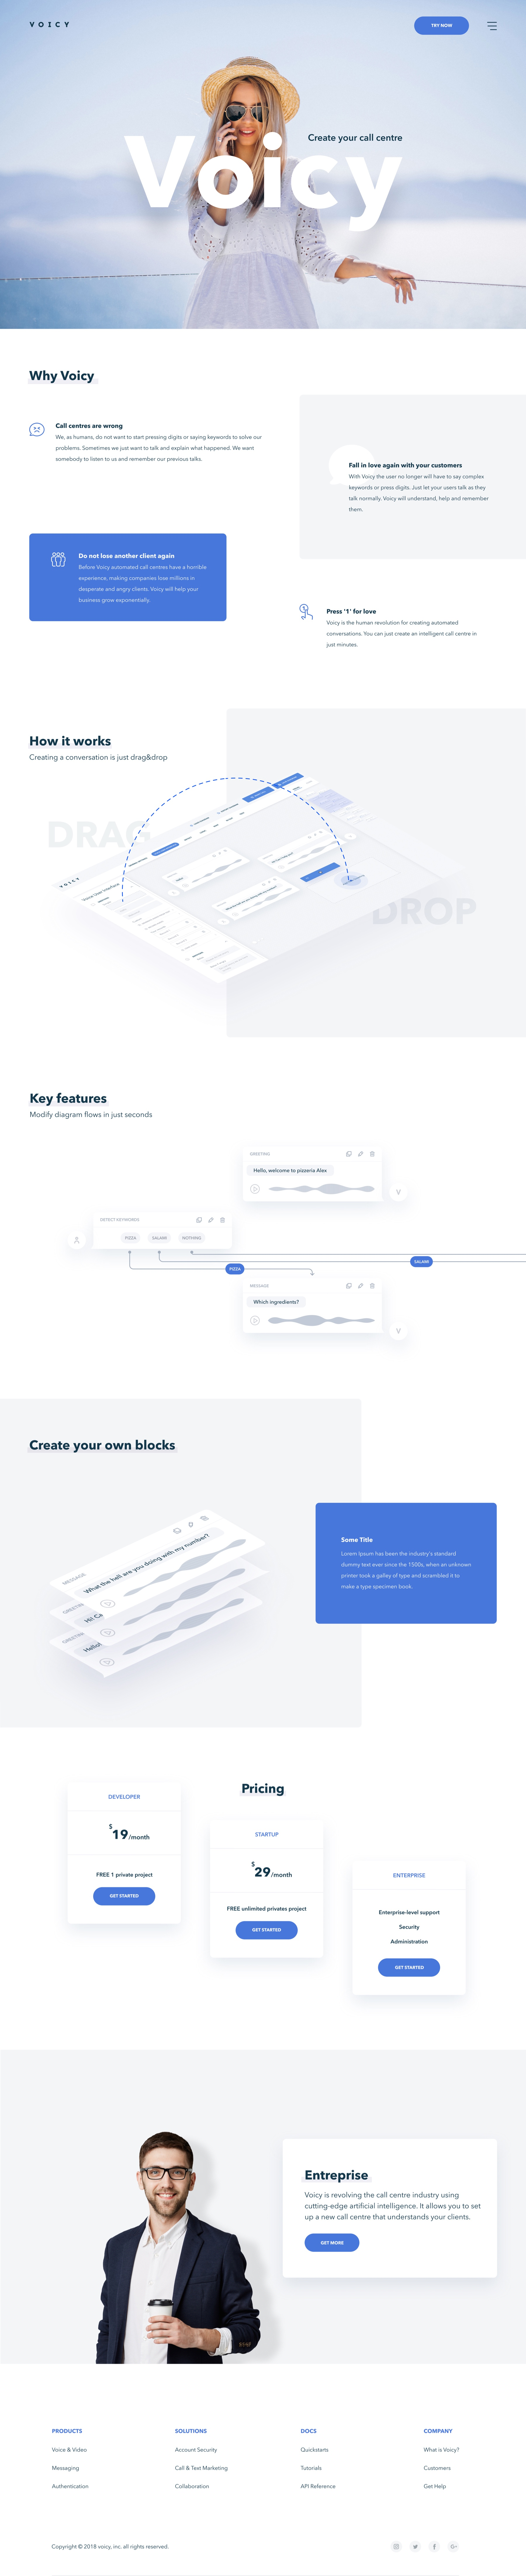 voicy_landing_page